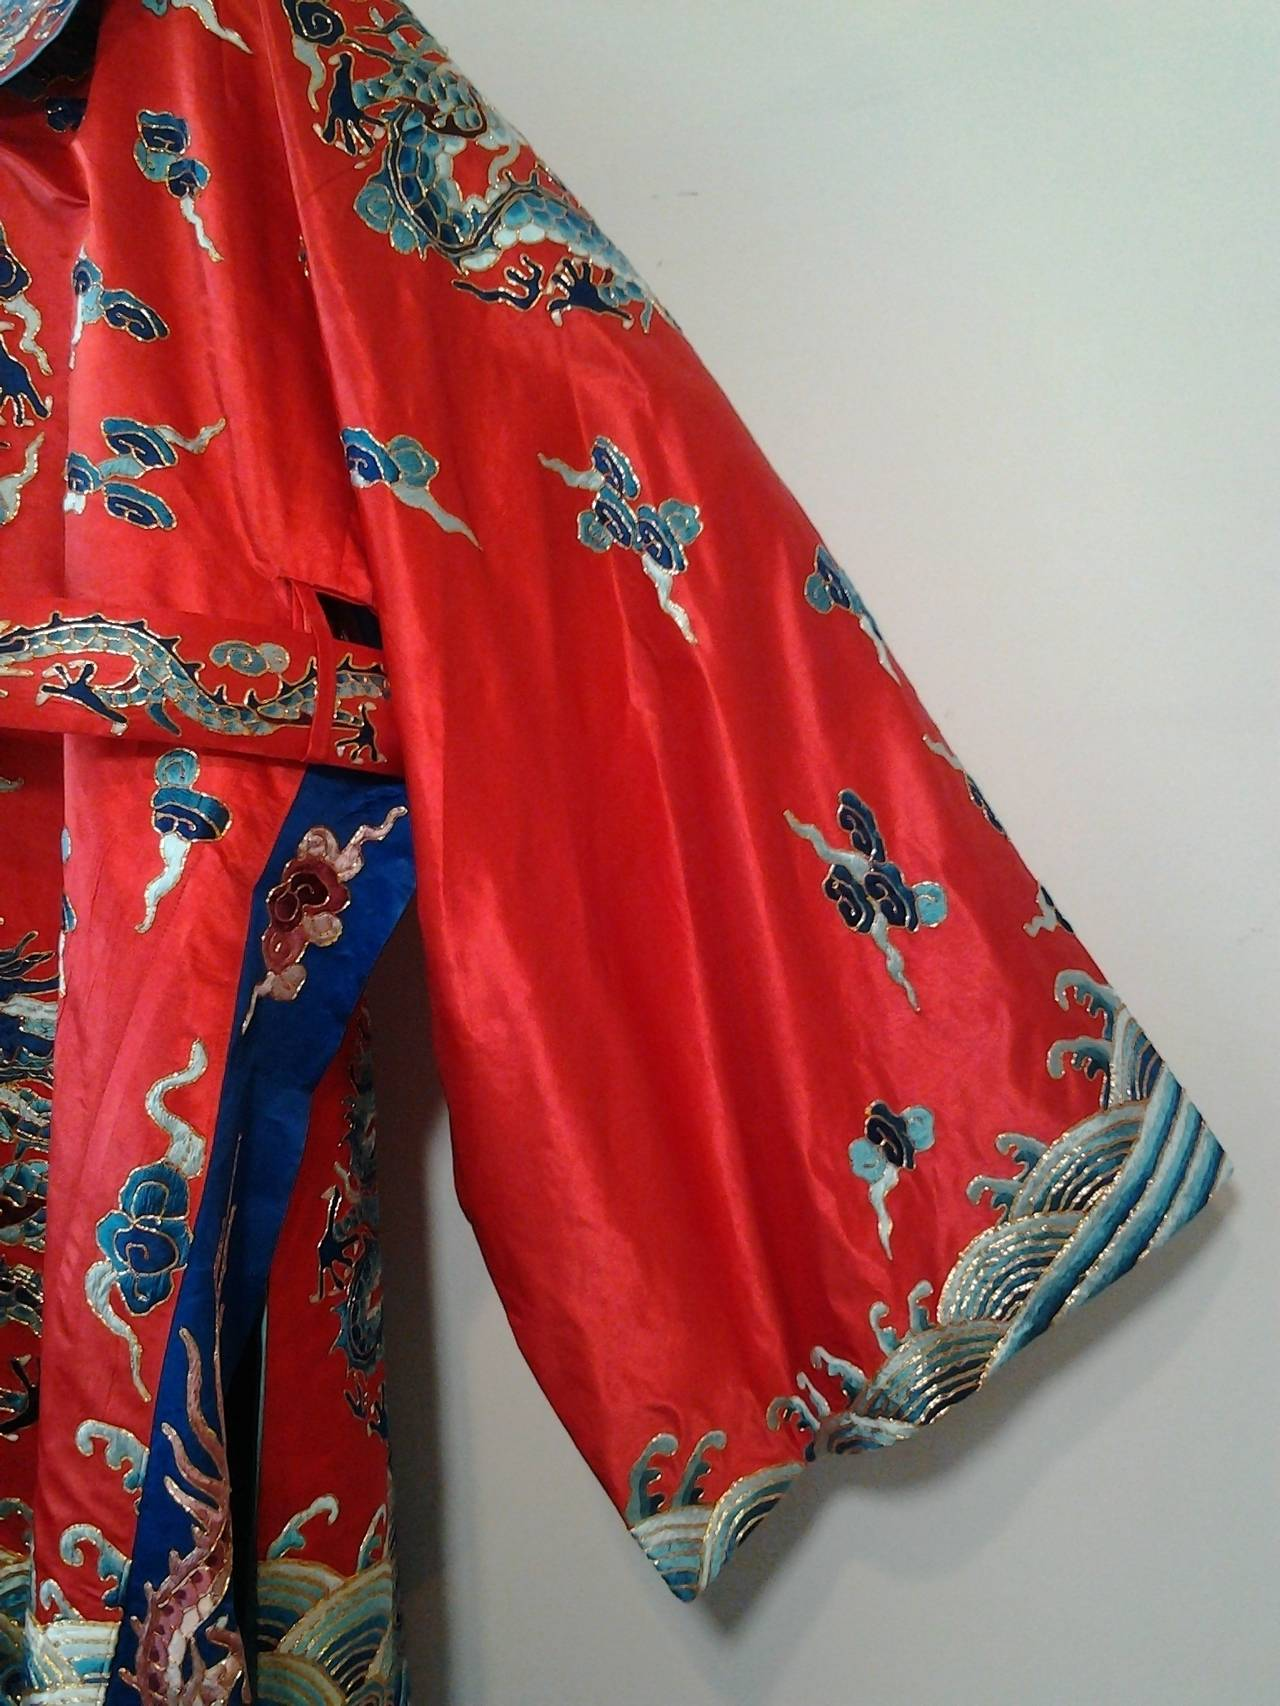 1940s Chinese Red Dragon Robe 3 Pieces 5